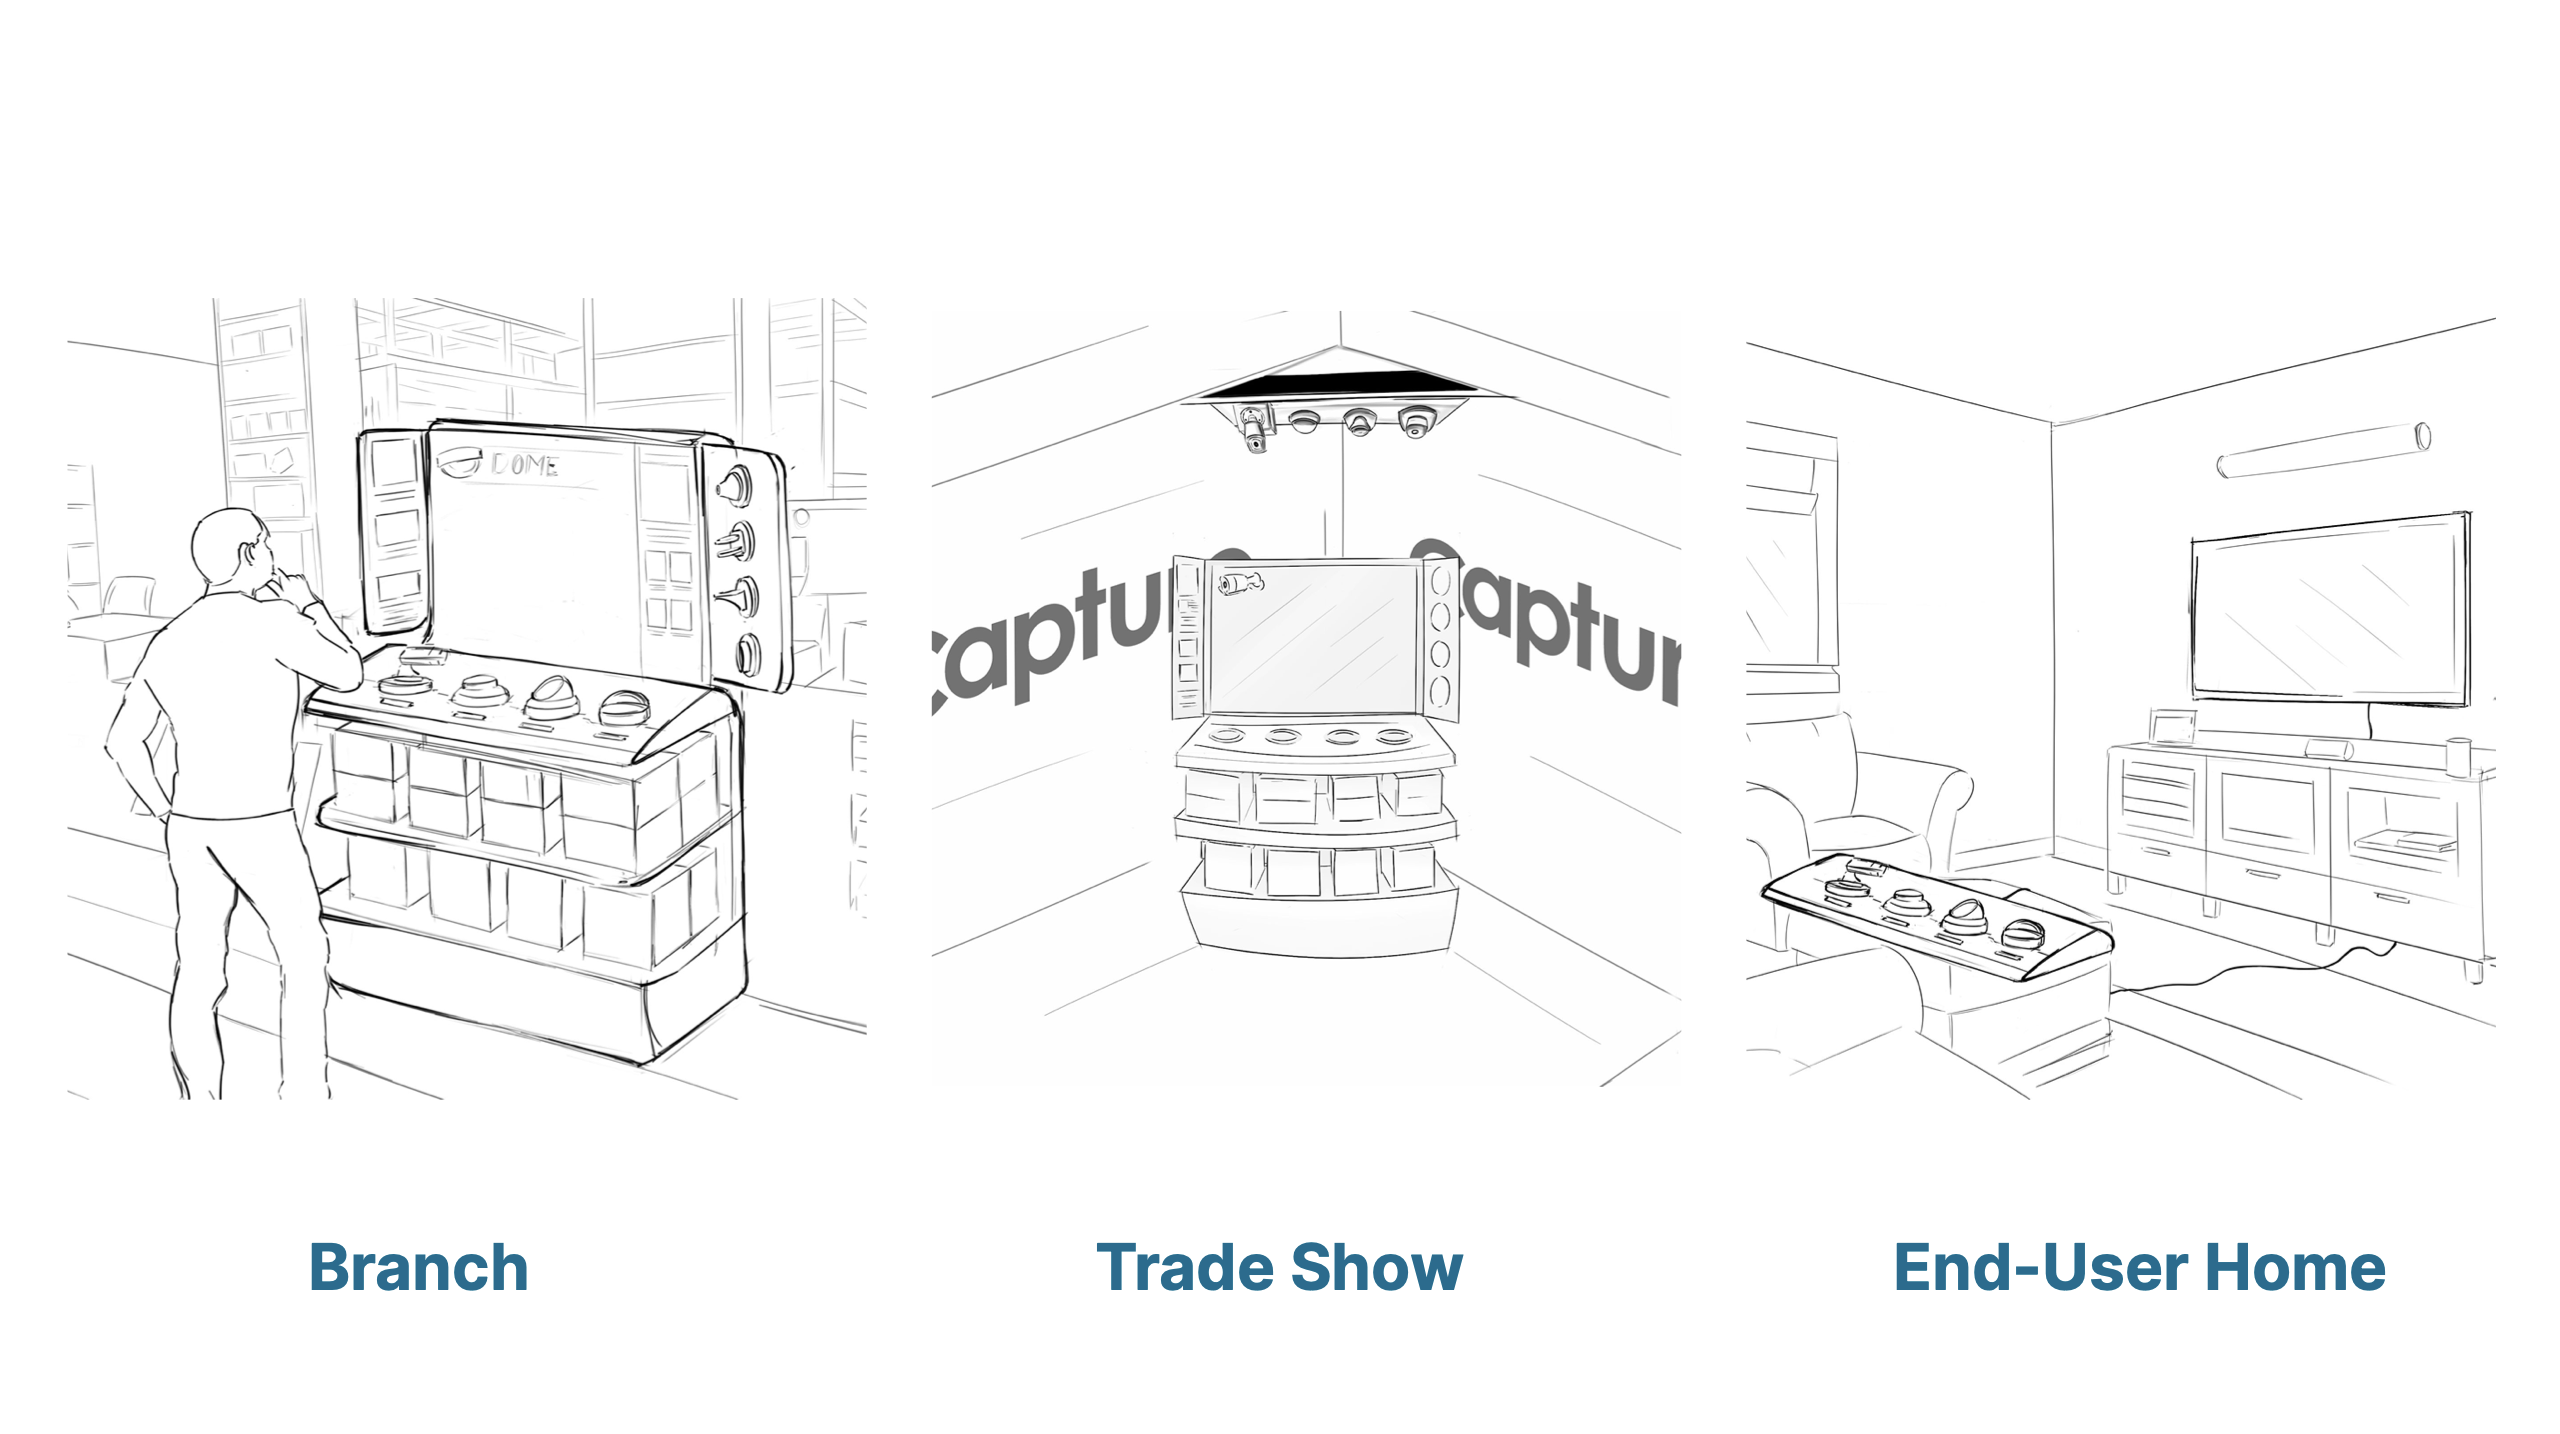 The system can be adapted to work anywhere in the store, like an end cap or a check-out line. It's versatile enough to be removed and brought to the user's home, or set up at a trade show.